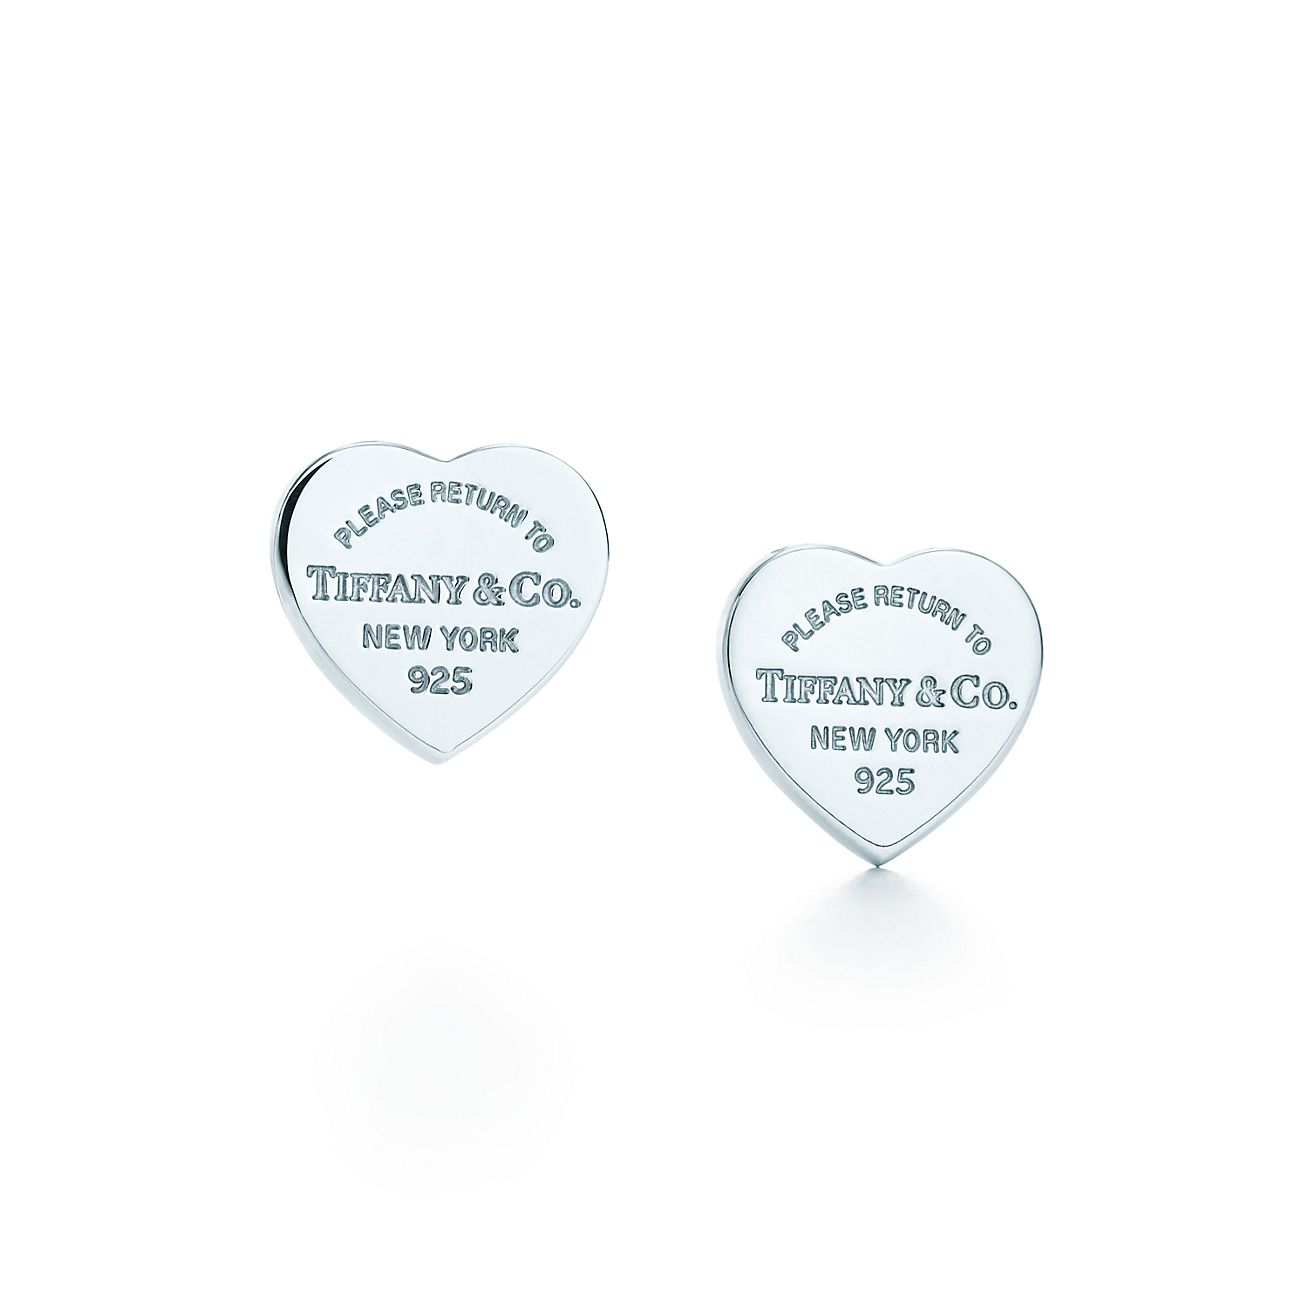 Jewelry Earrings Return To Tiffany Mini Heart Tag Earrings 23900564 Tiffany Earrings Sterling